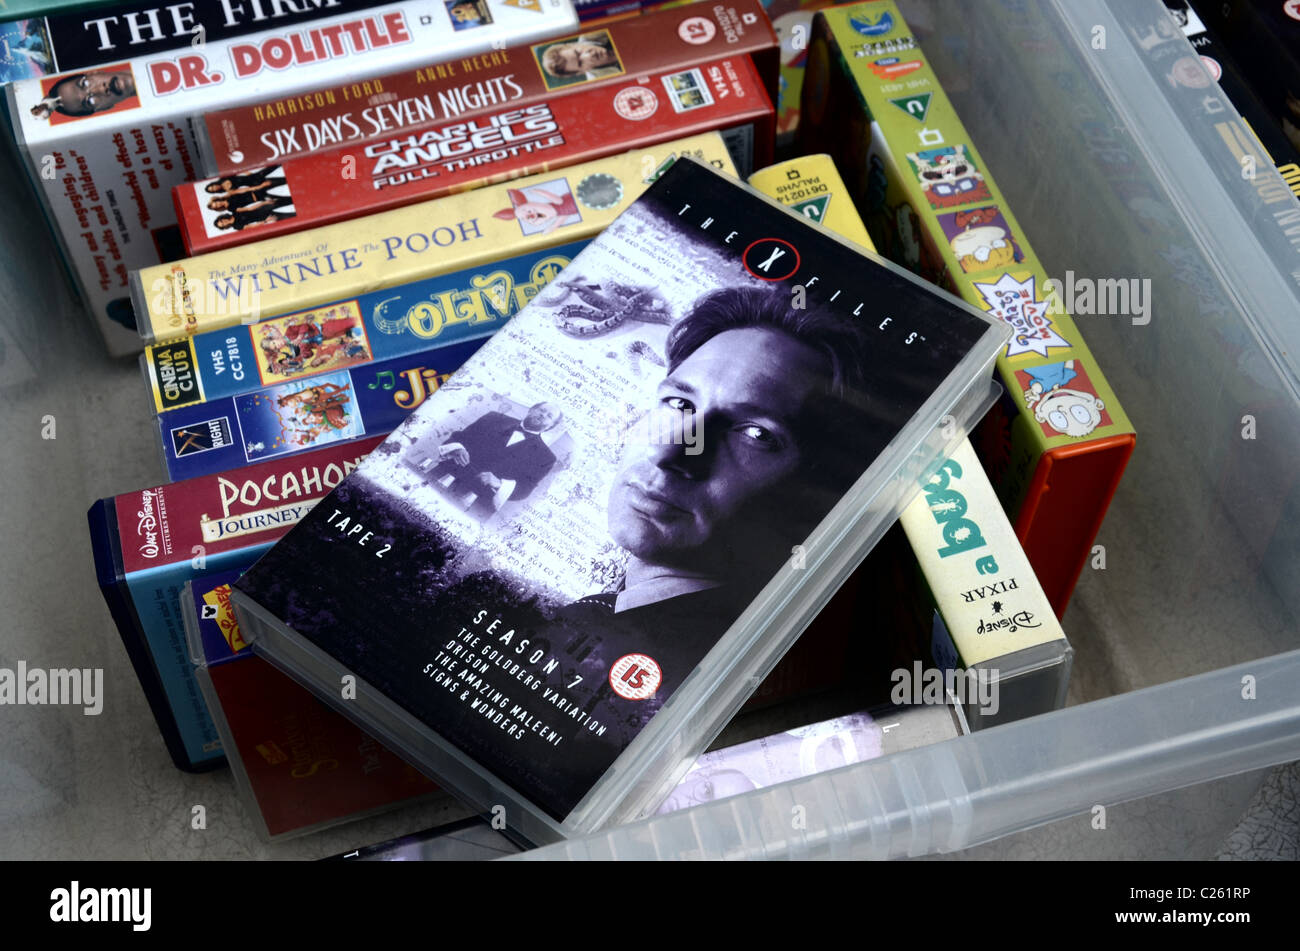 Video Tapes for sale outside a charity shop in Edinburgh, including a copy of the X-Files season 7. - Stock Image